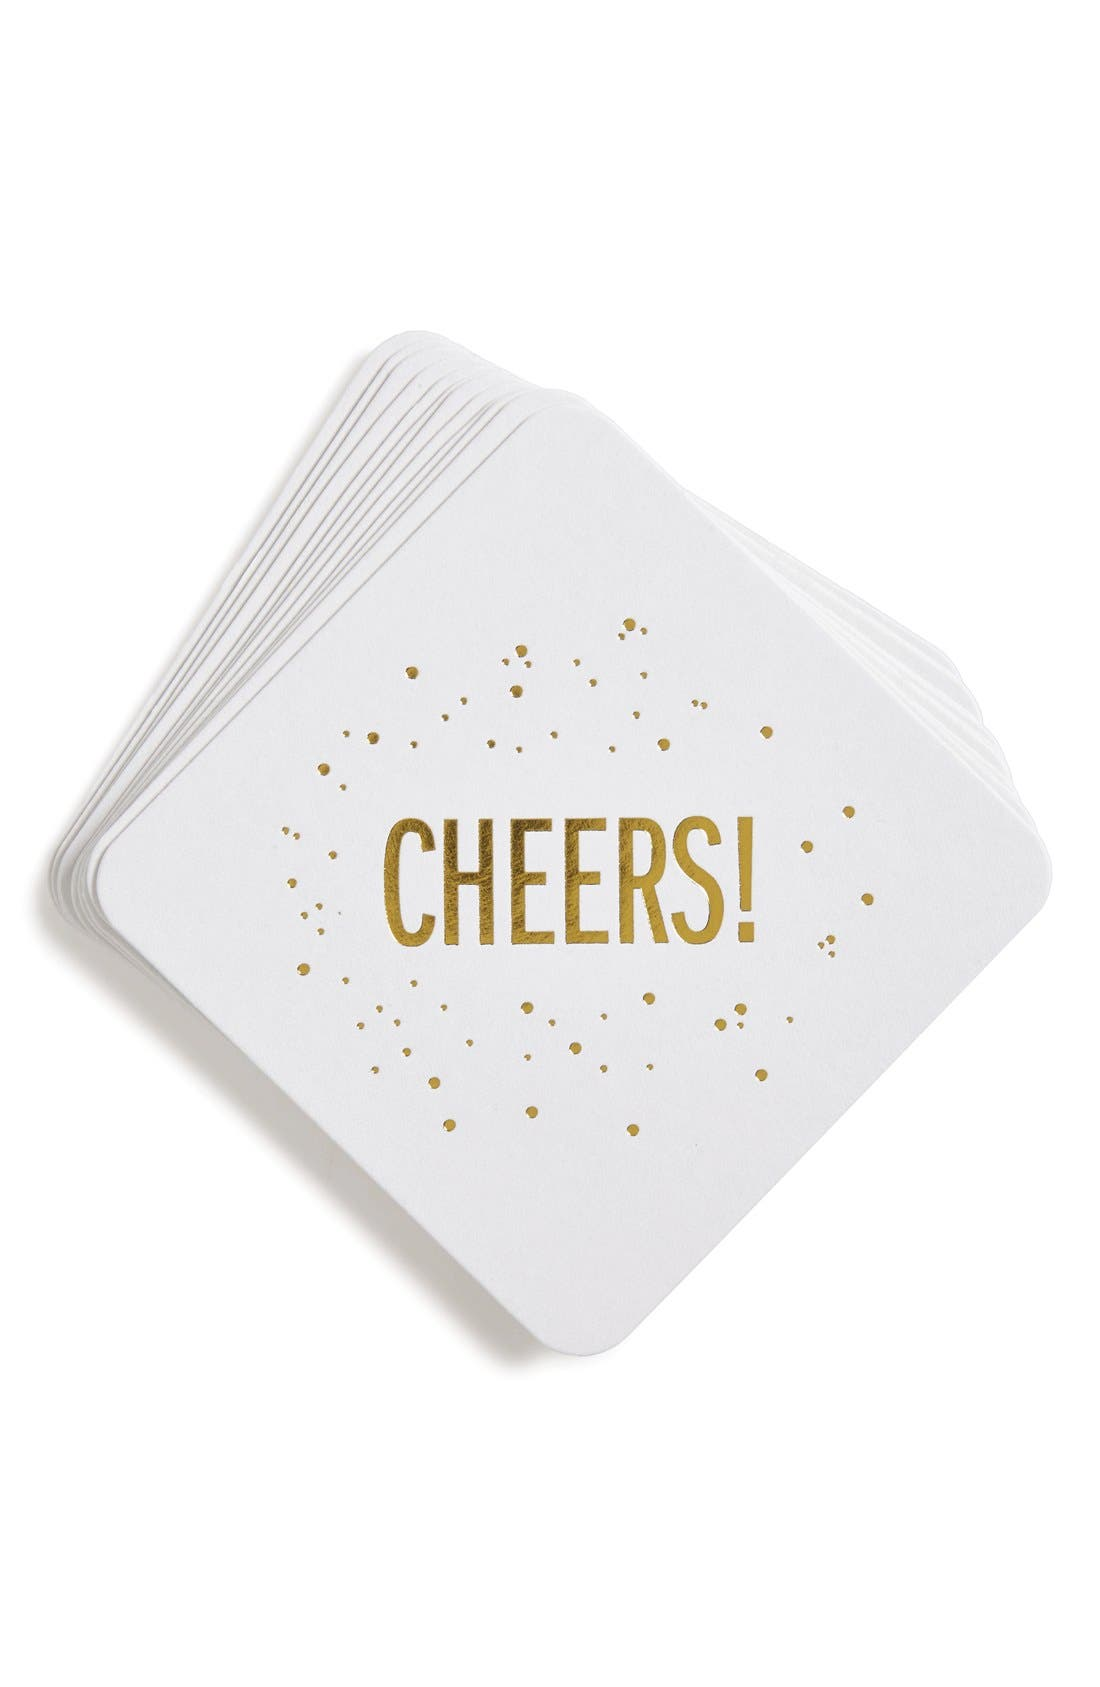 Alternate Image 1 Selected - The Pink Orange 'Cheers' Coasters (Set of 12)